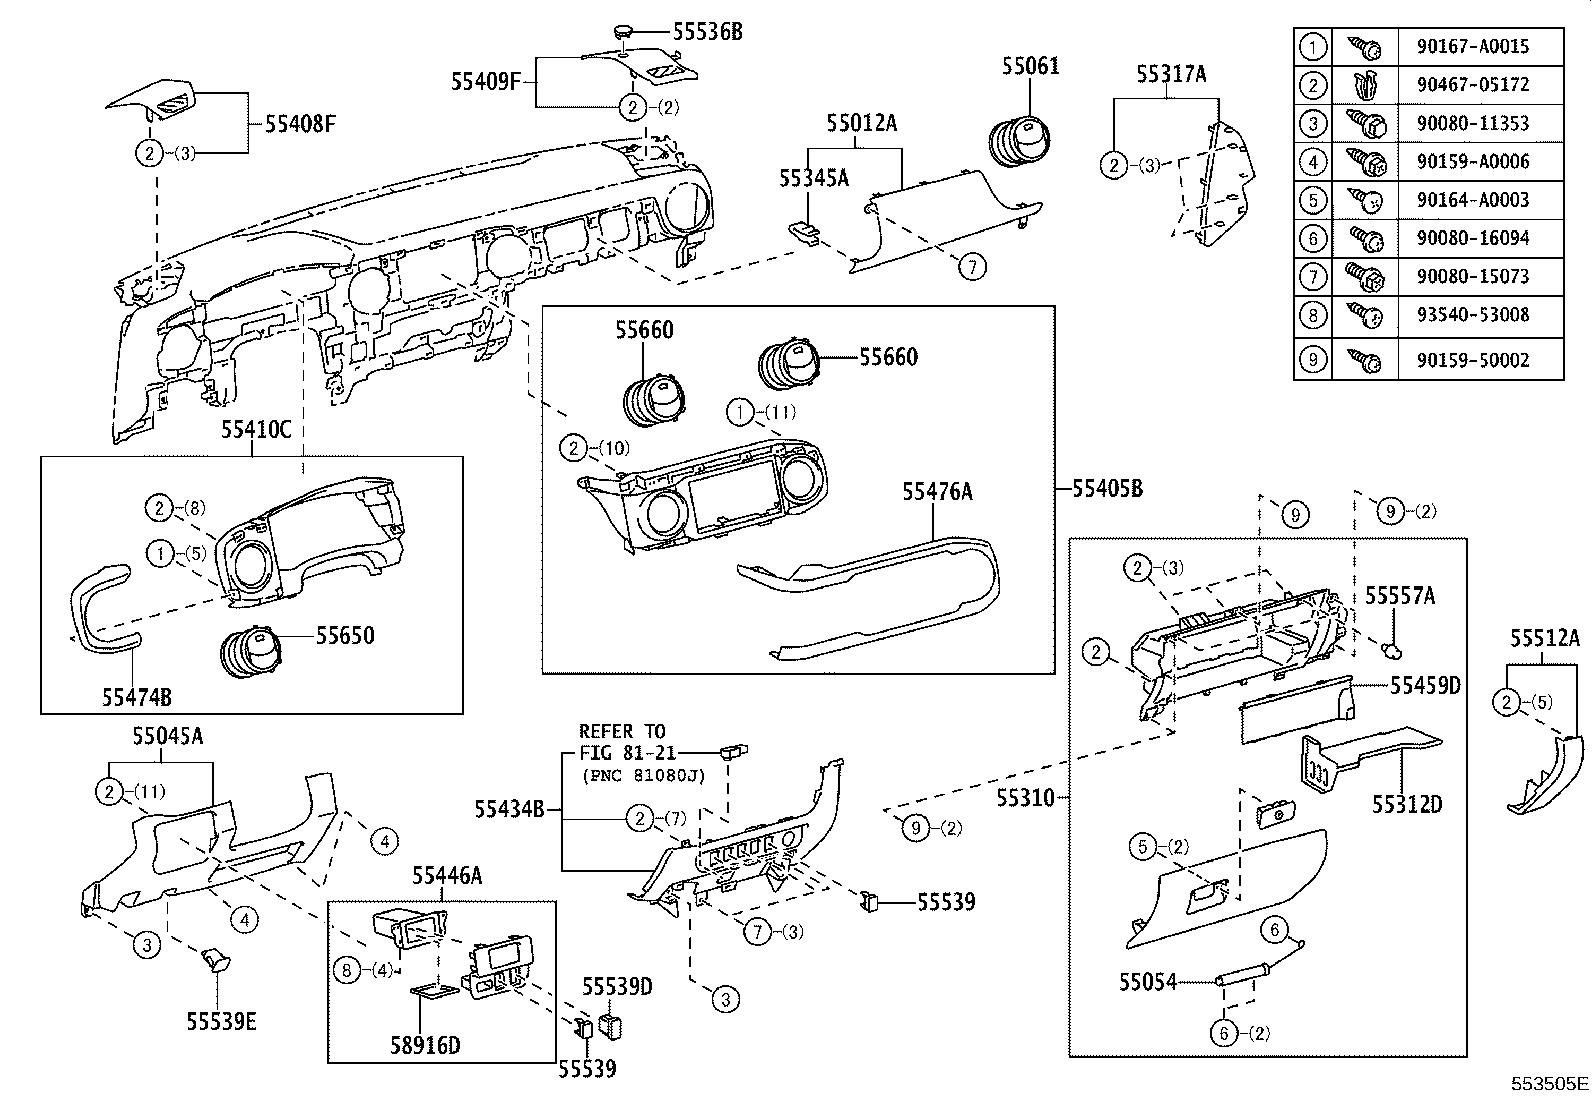 2005 toyota tacoma parts diagram 5 function led tailgate light bar wiring cushion instrument panel 5534904010